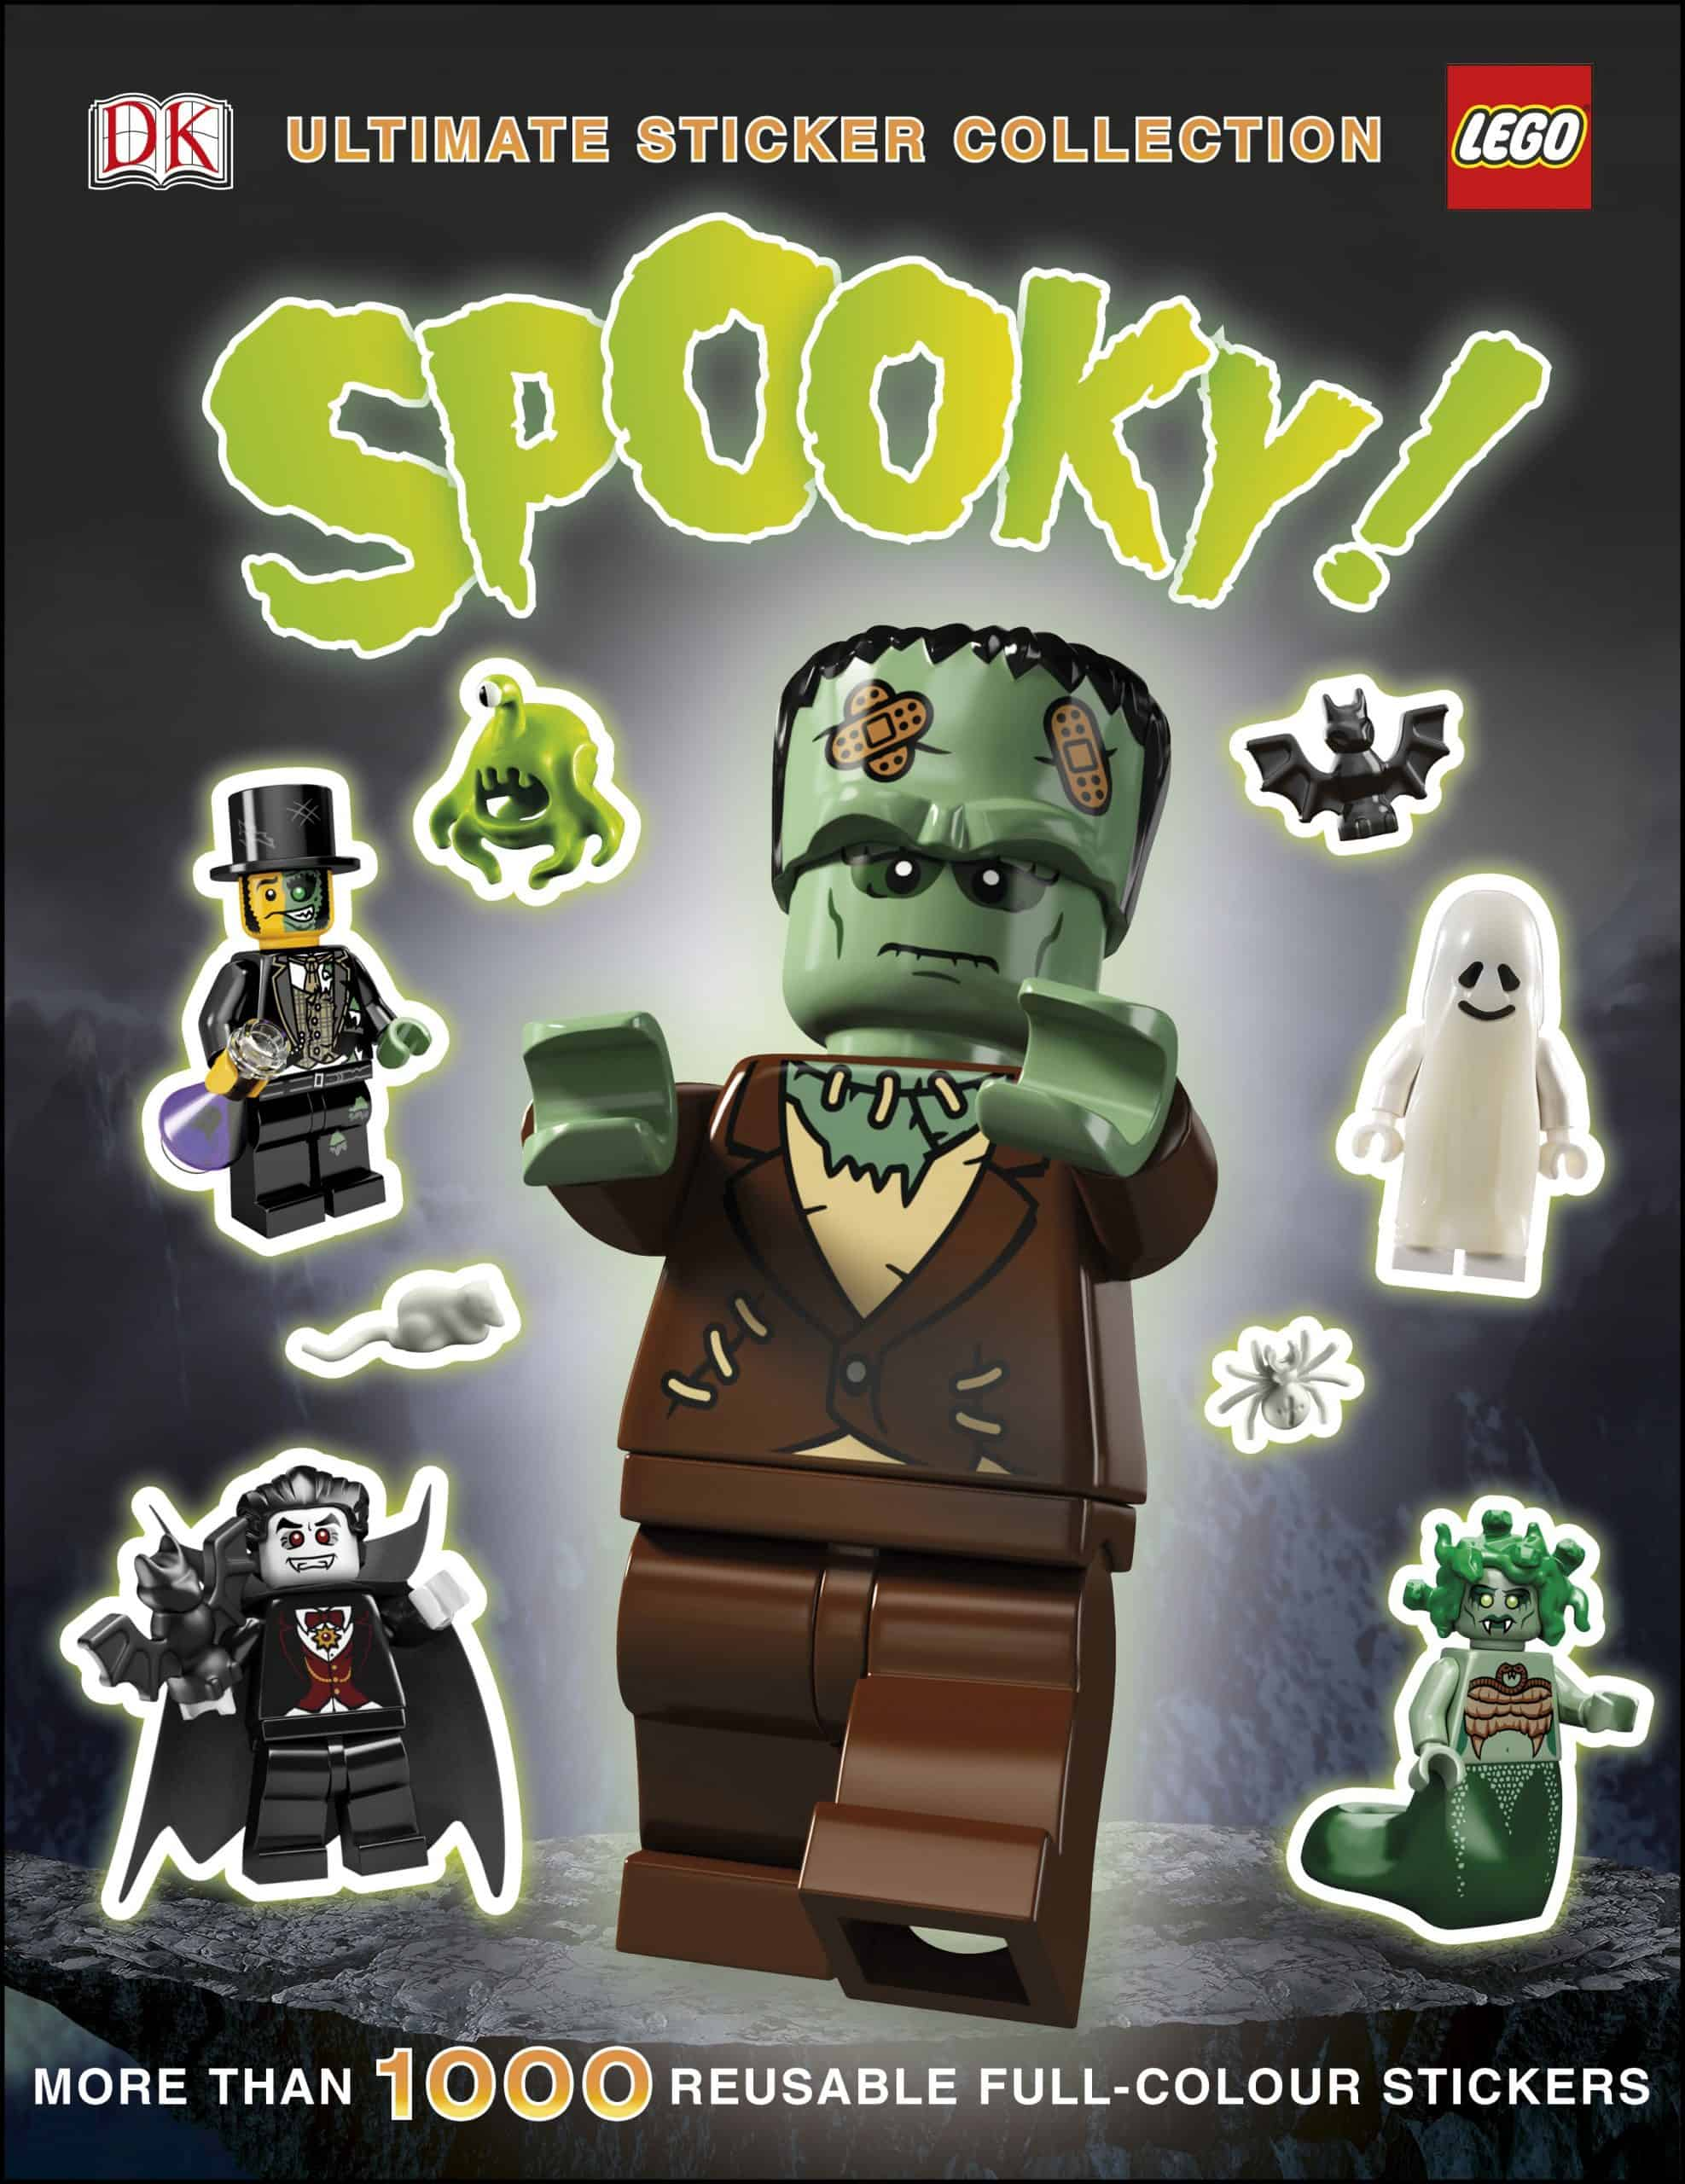 lego spooky ultimate sticker collection 5005664 scaled